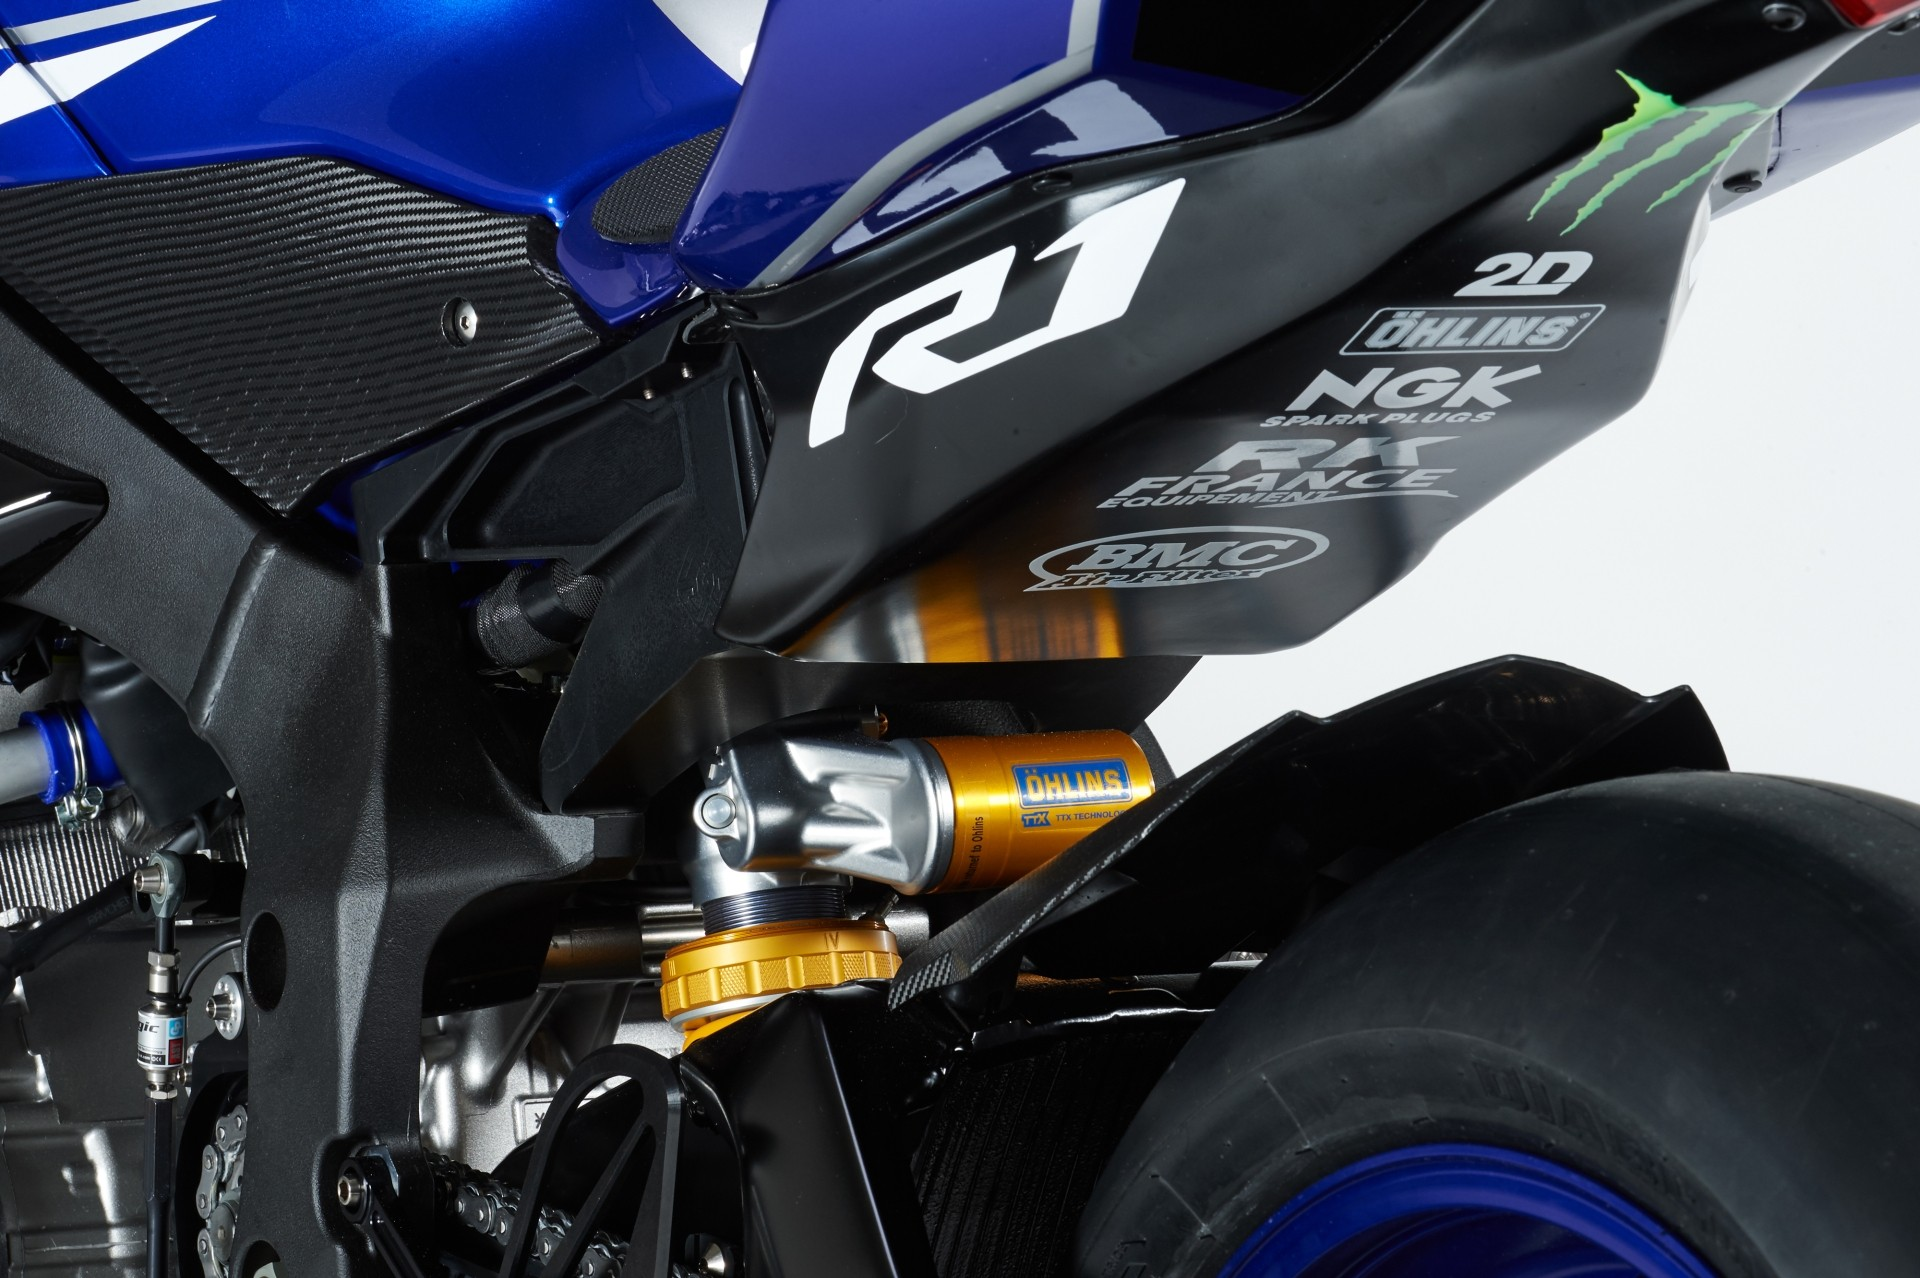 20150310_yamaha-yzf-r1-endurance-world-championship-edition-shows-up-photo-gallery_13.jpg